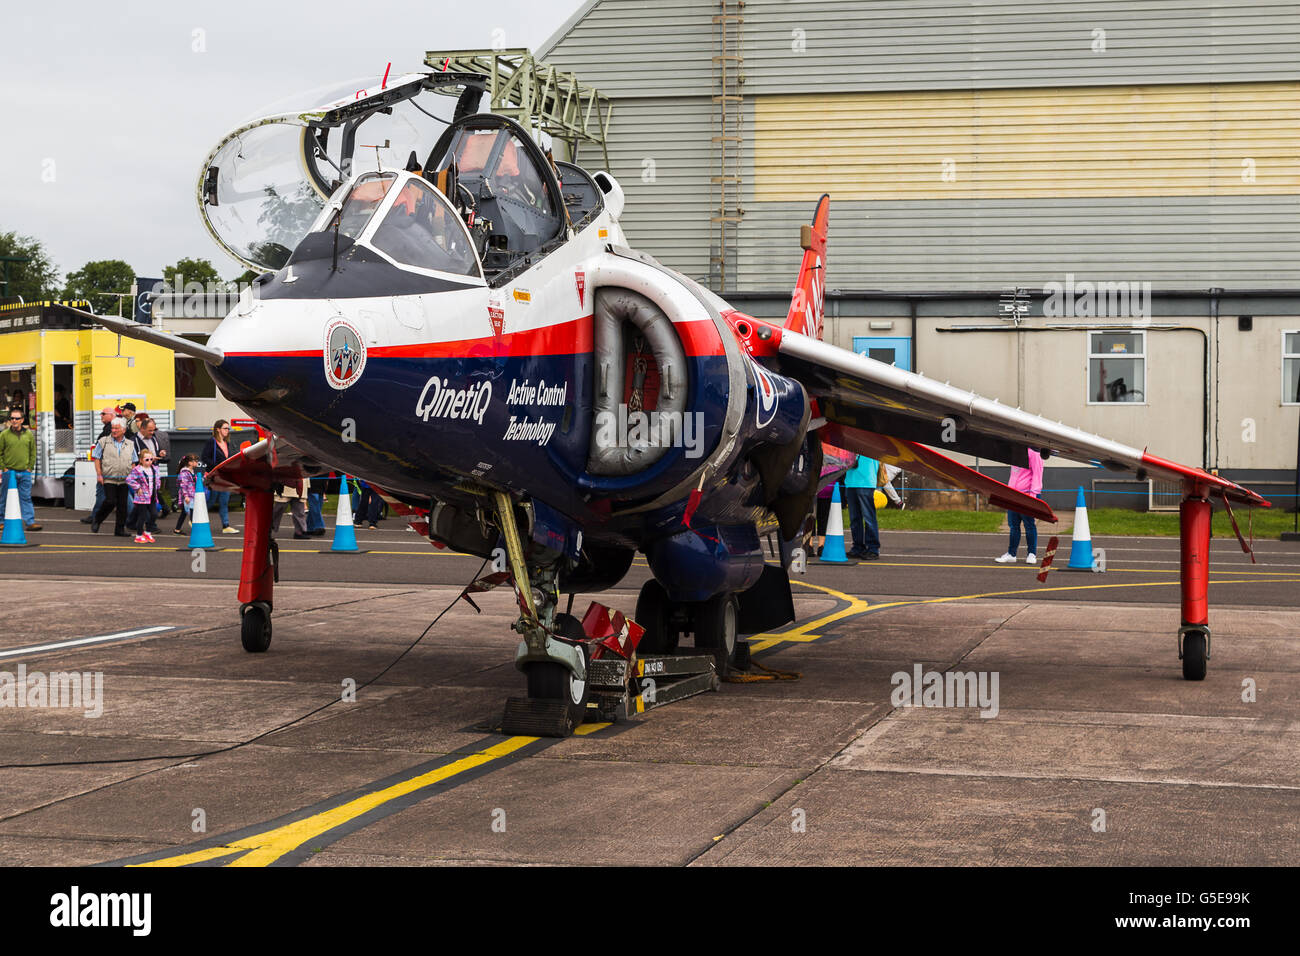 QinetiQ Harrier with its canopy up - Stock Image